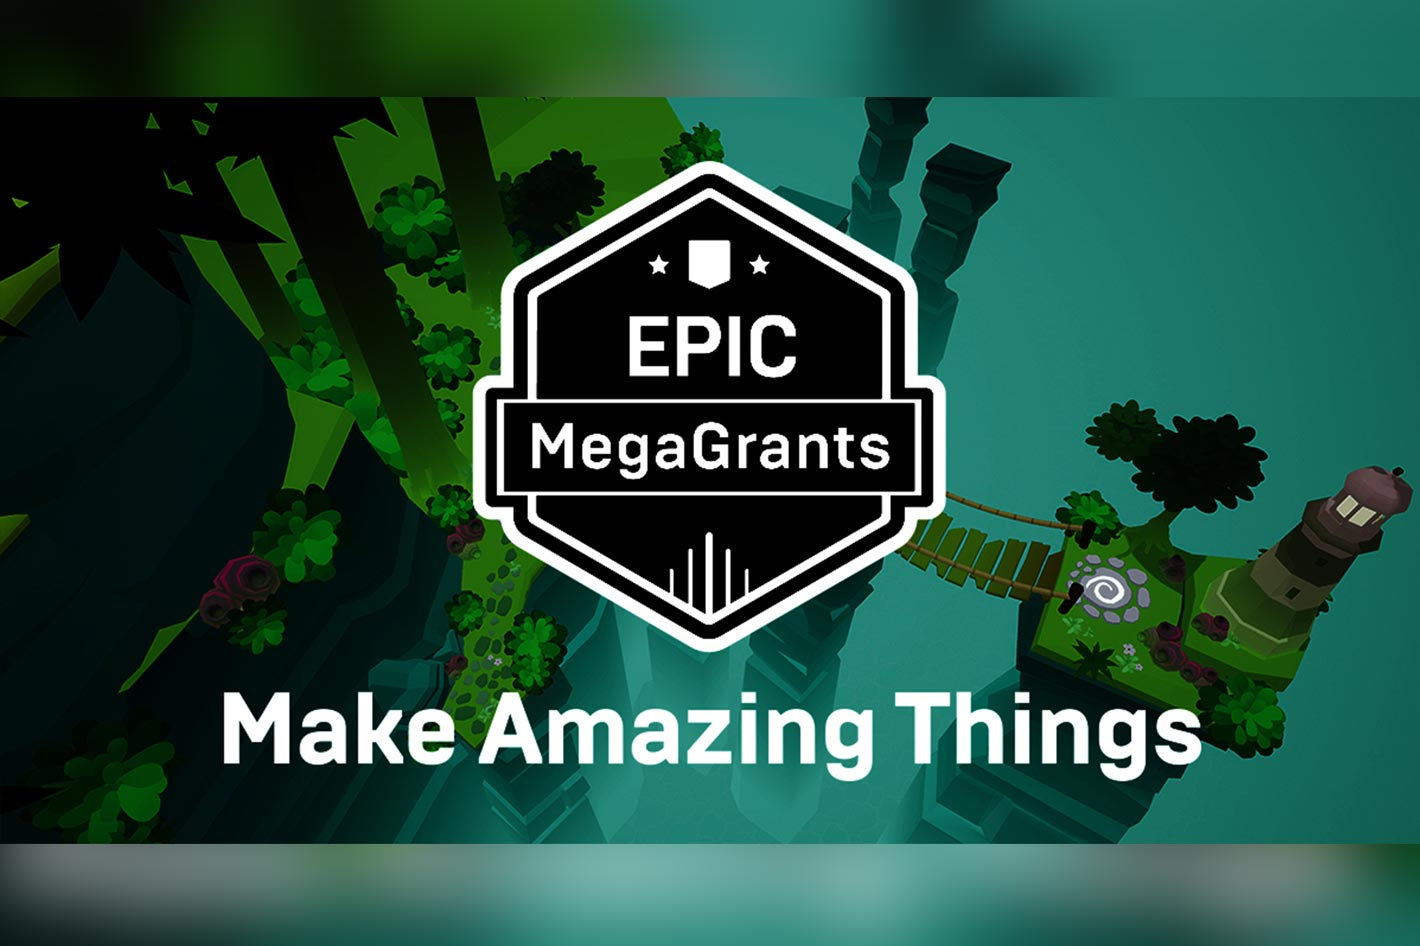 Epic MegaGrants: $42 million given to over 600 recipients